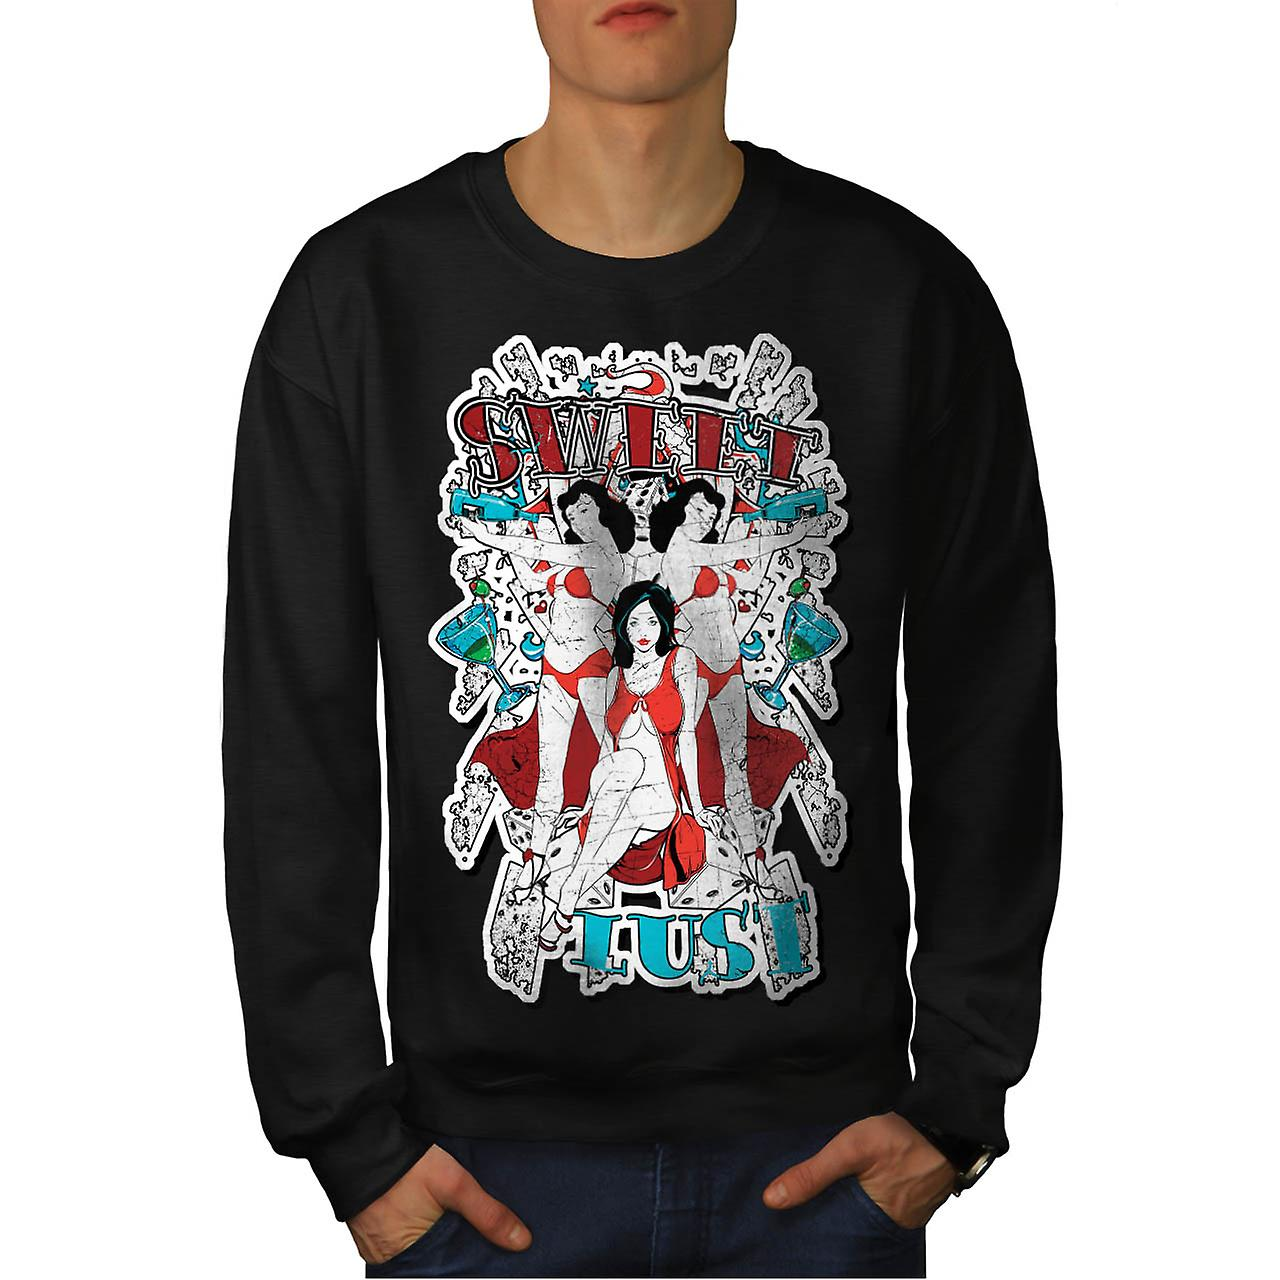 Sweet Lust Casino Bet Seduction Men Black Sweatshirt | Wellcoda